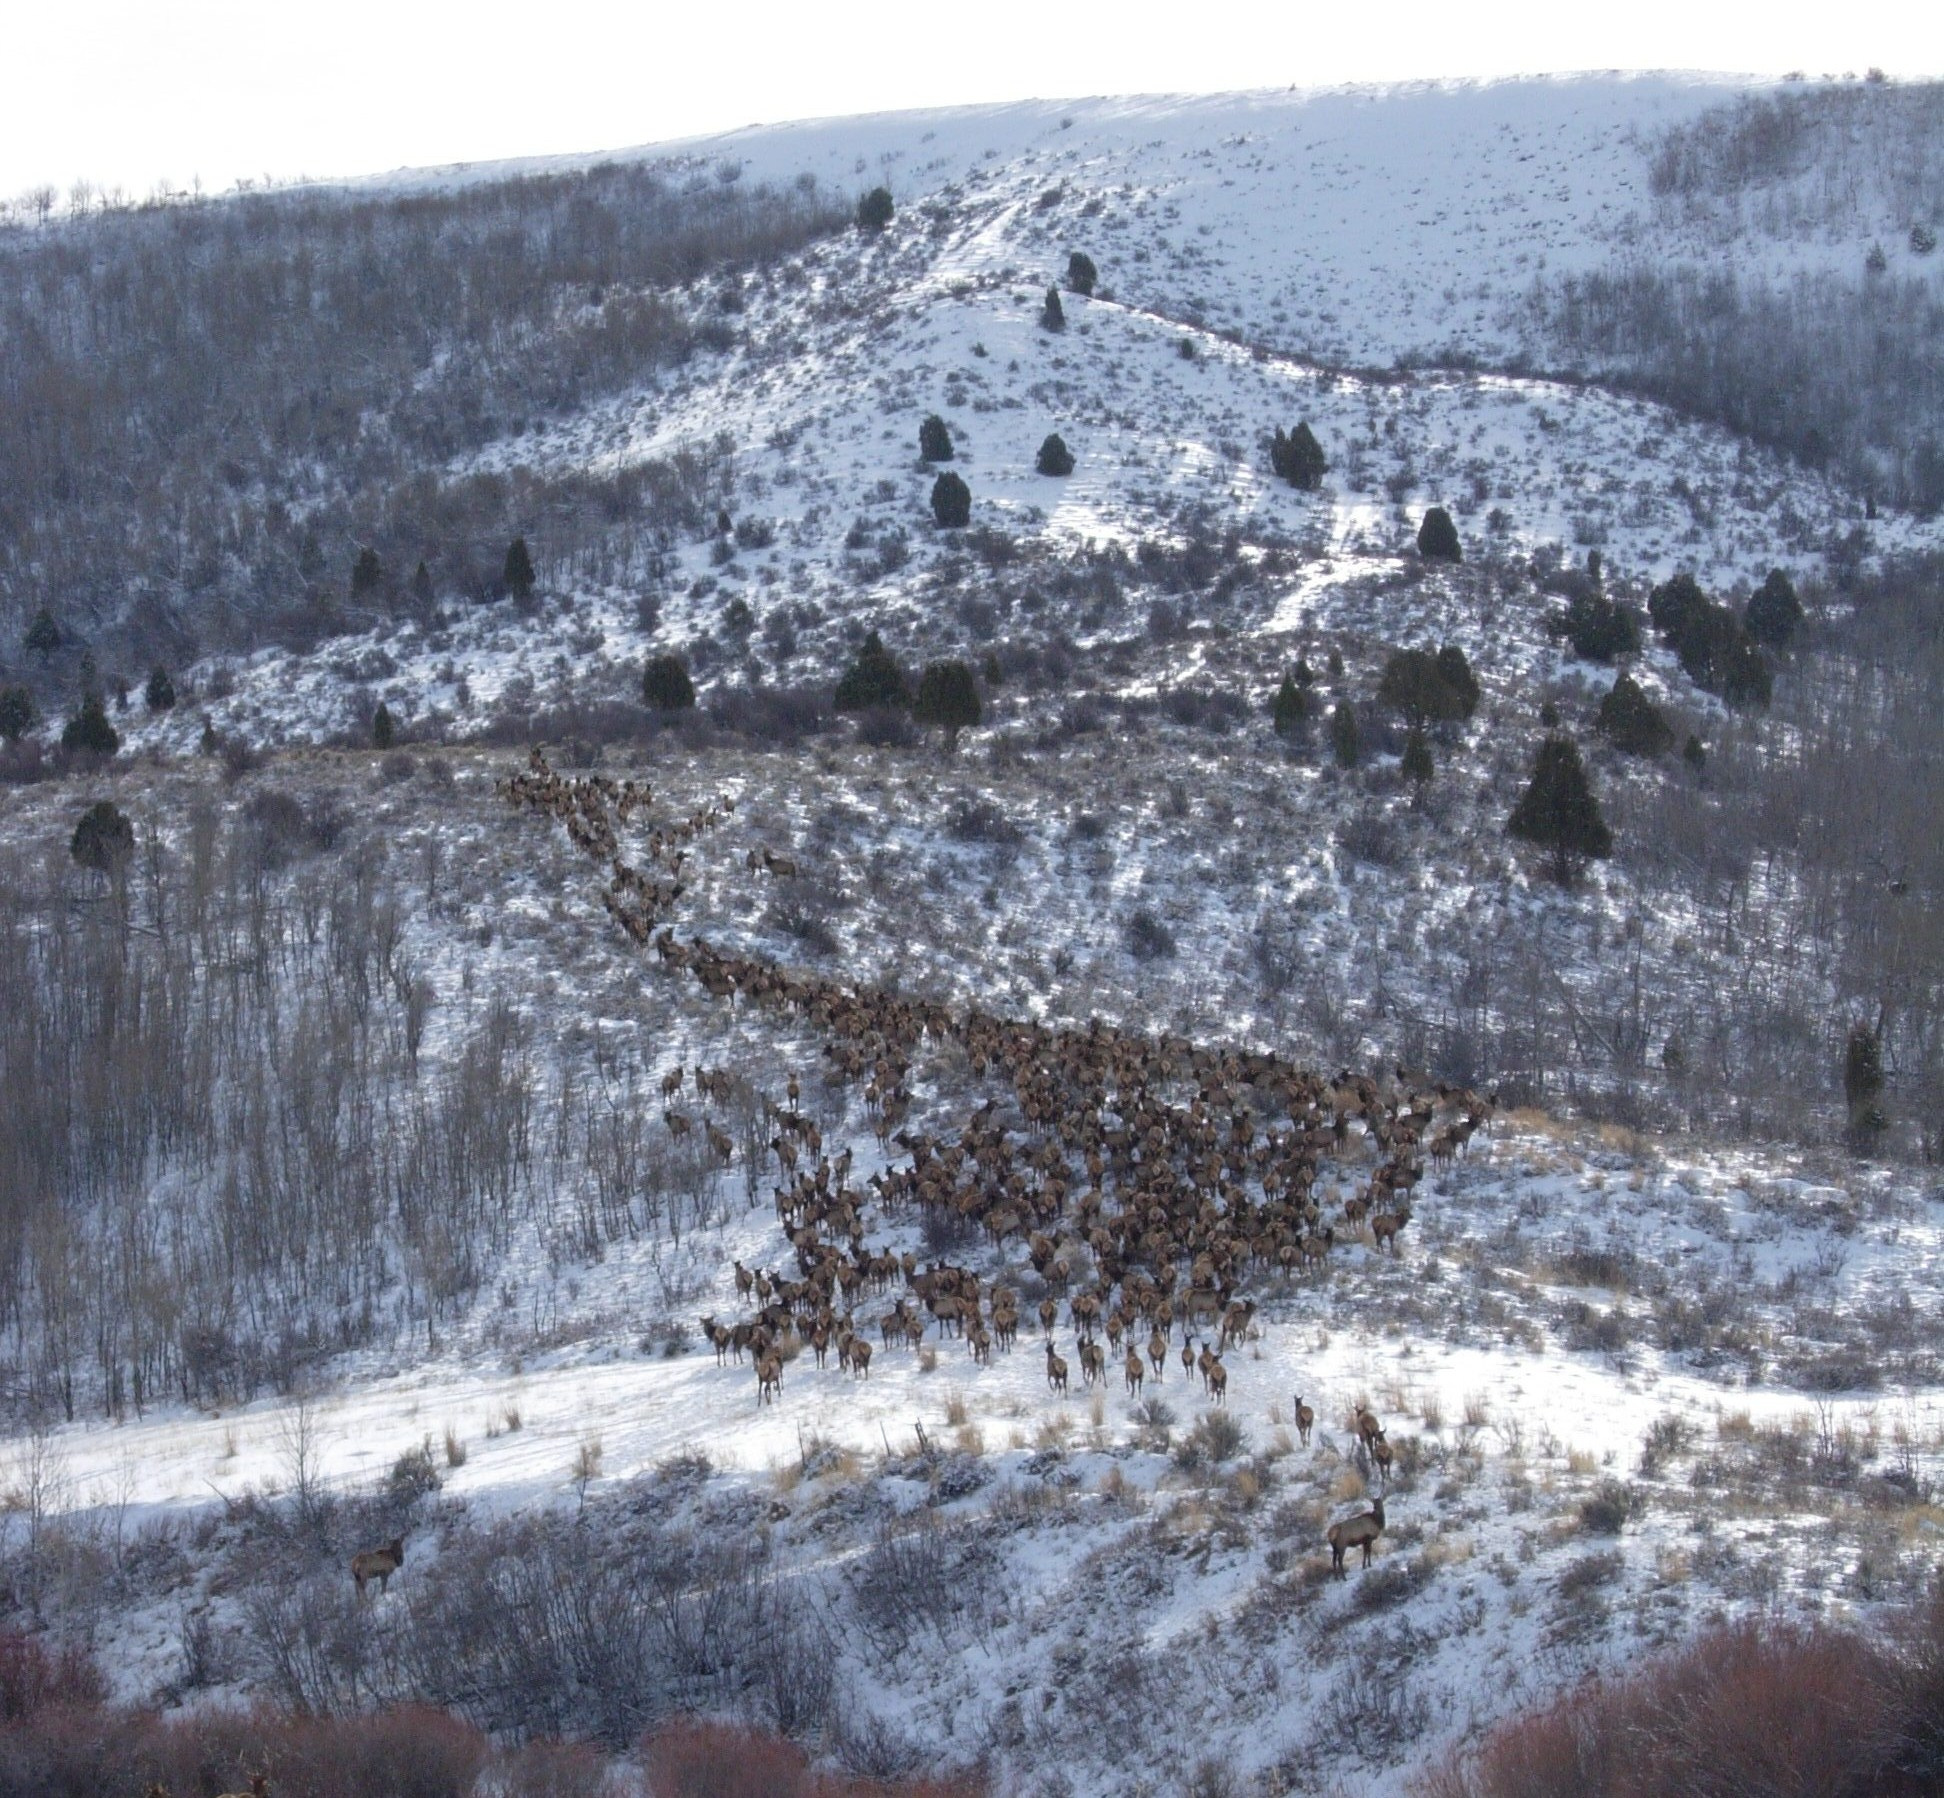 large elk herd in snow at the Tex Creek WMA Wildlife Management Area